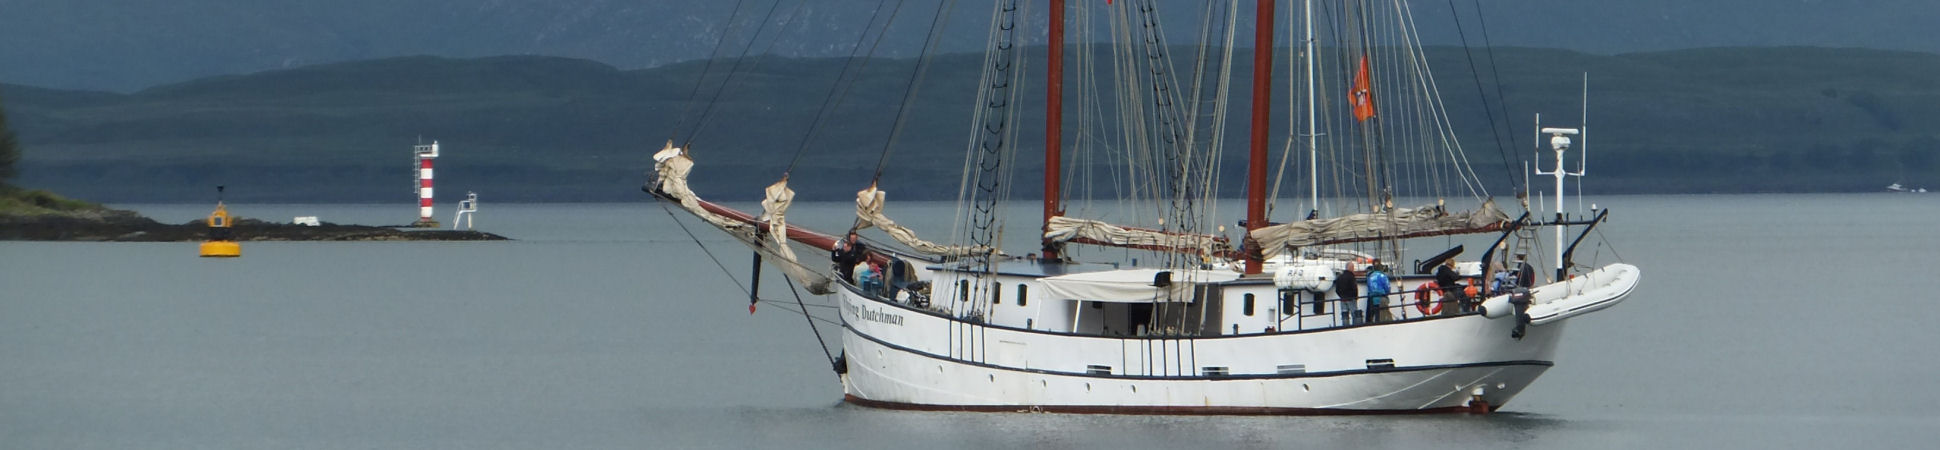 Sailing vessel The Flying Dutchman